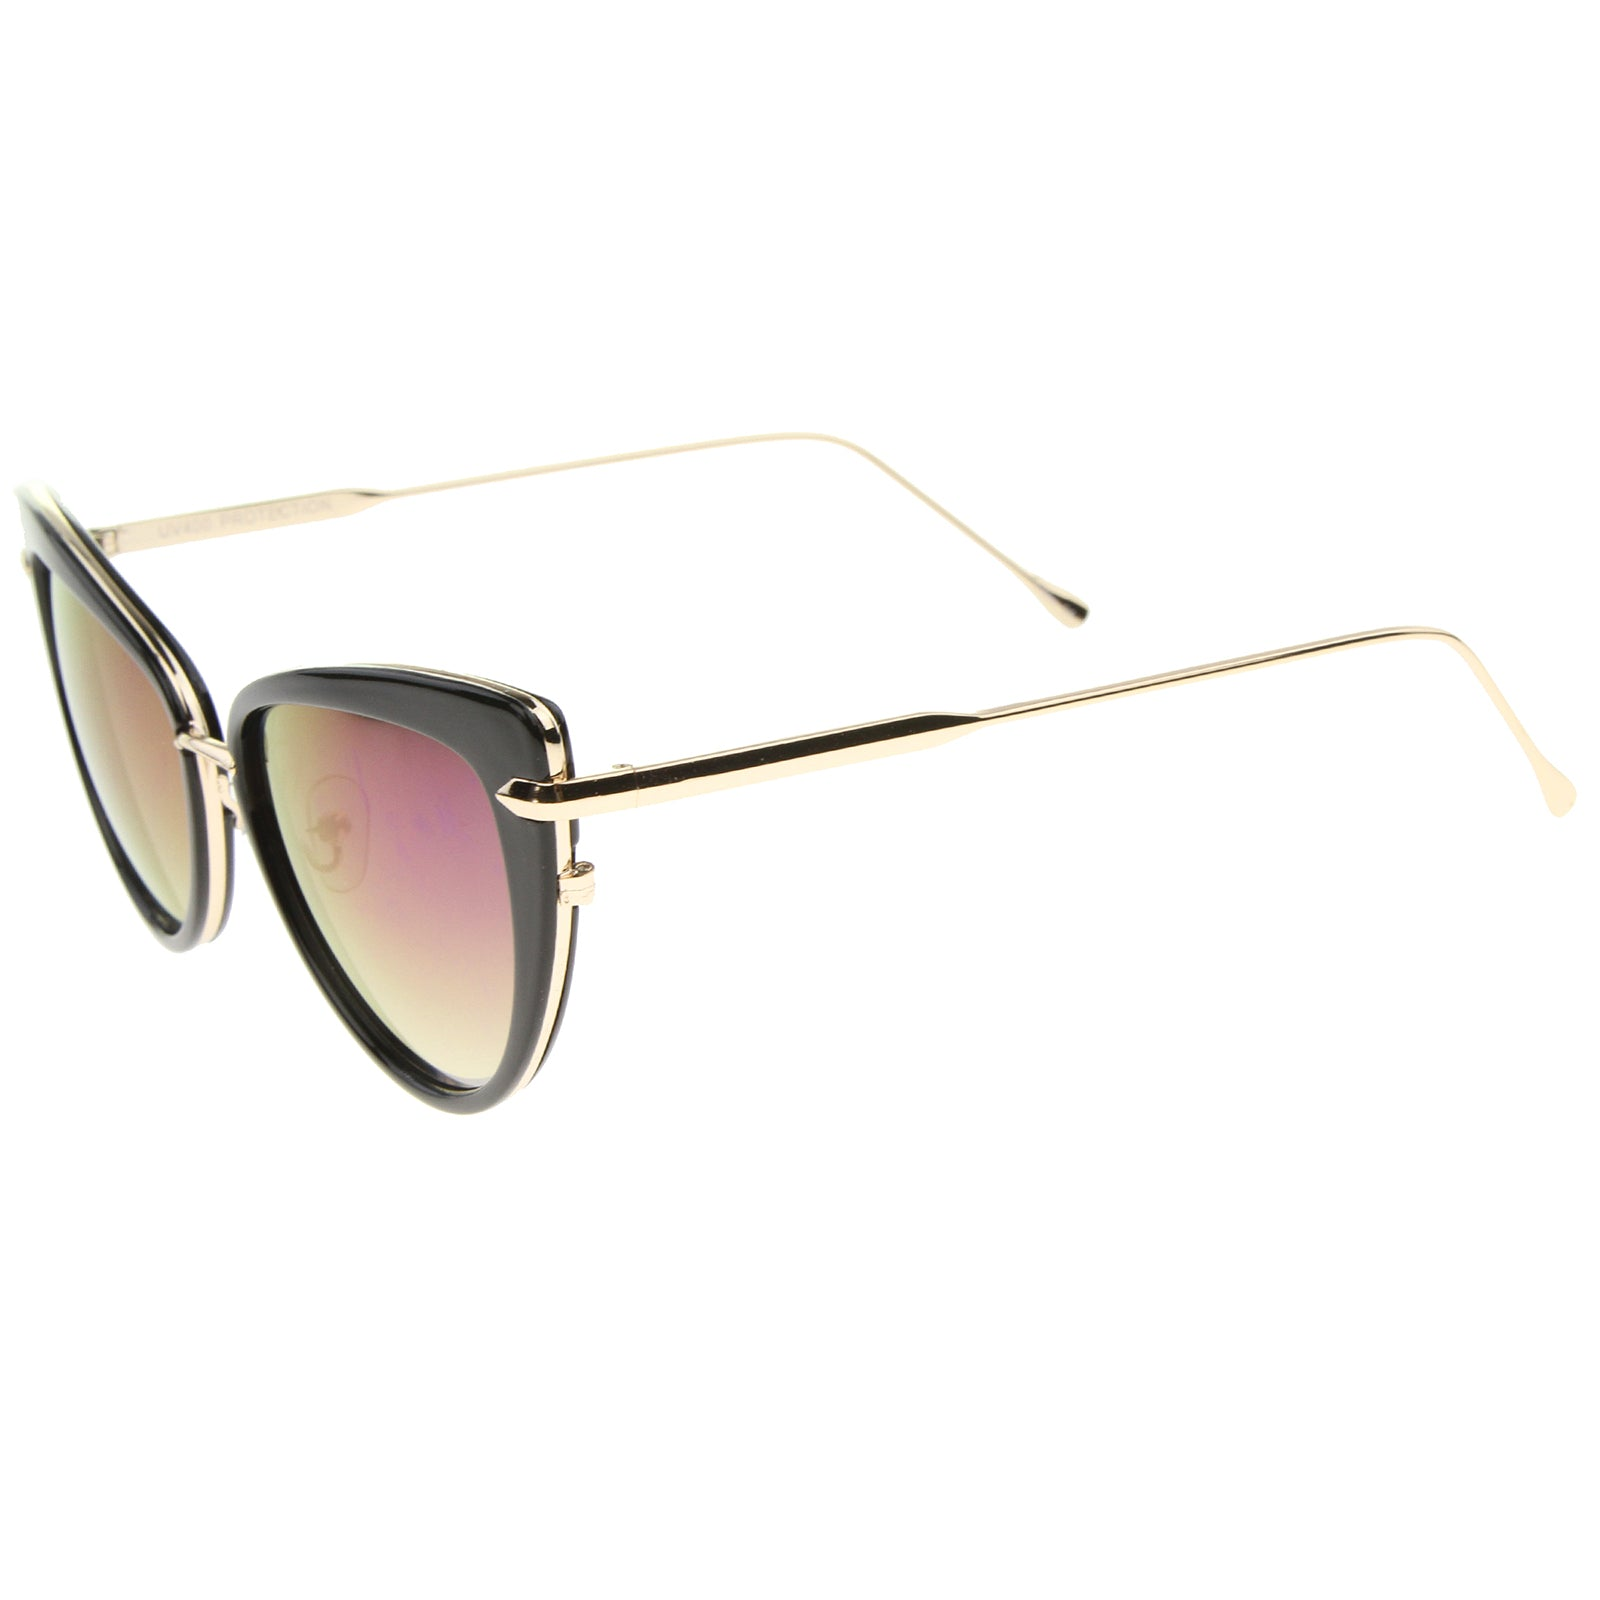 Women's High Fashion Metal Temple Super Cat Eye Sunglasses 55mm - sunglass.la - 3